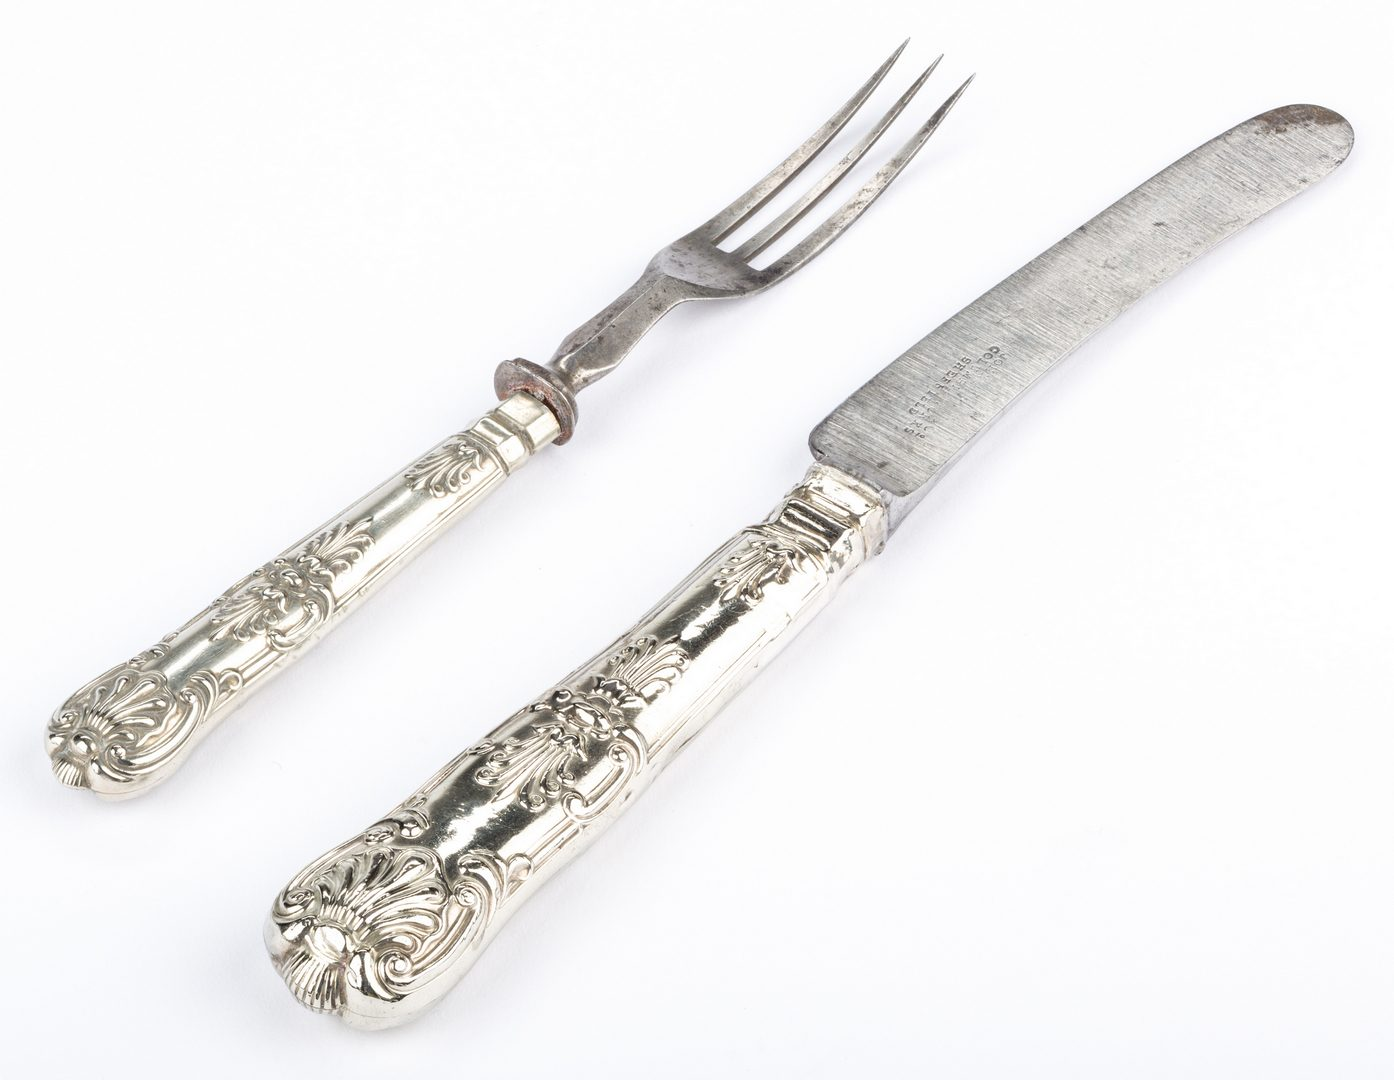 Lot 87: Knife and Fork, possibly Andrew Jackson's, 2 items